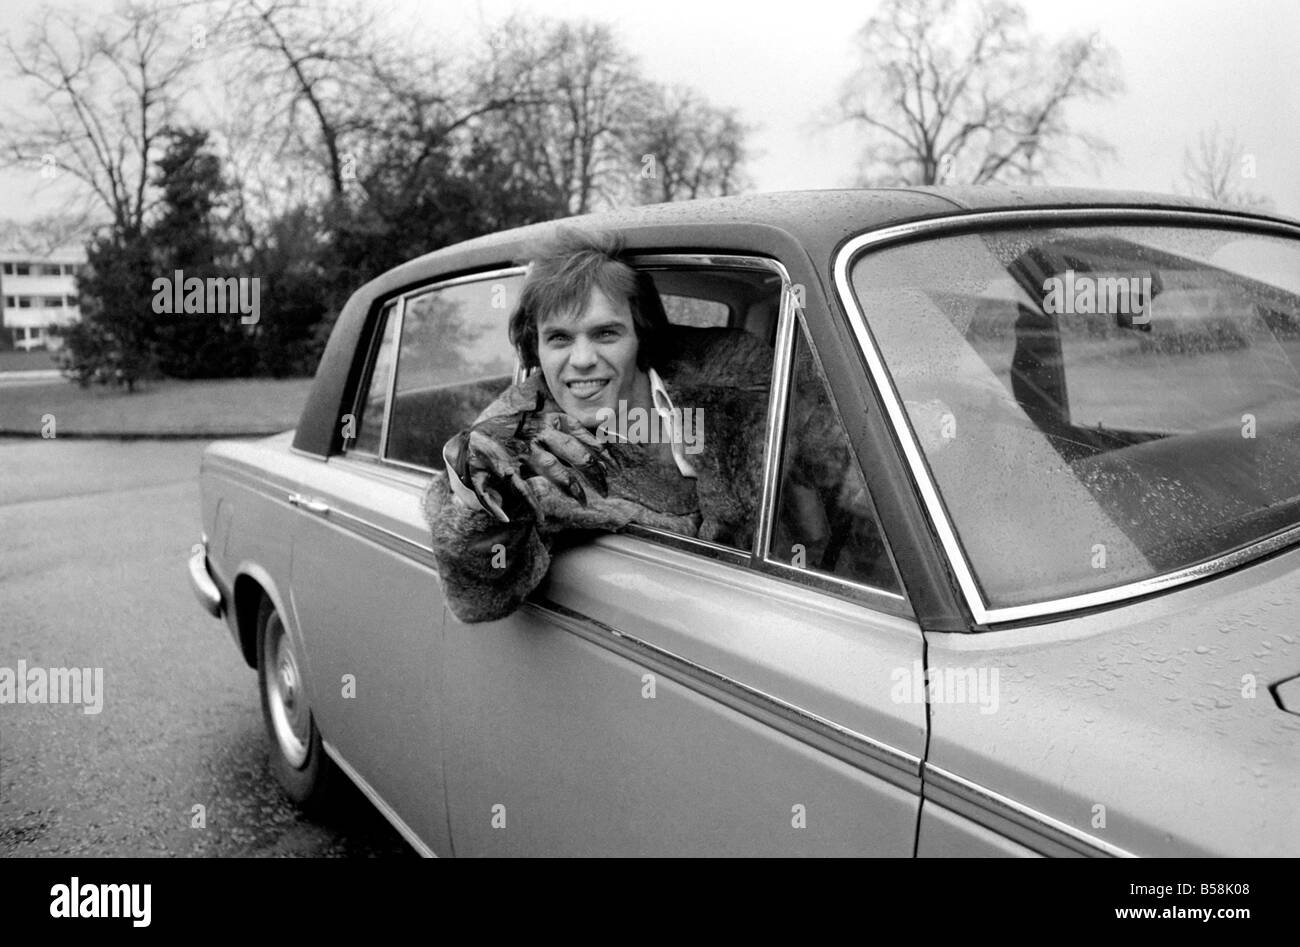 Humour Comedy Car Comedian Freddie Starr March 1975 75 01555